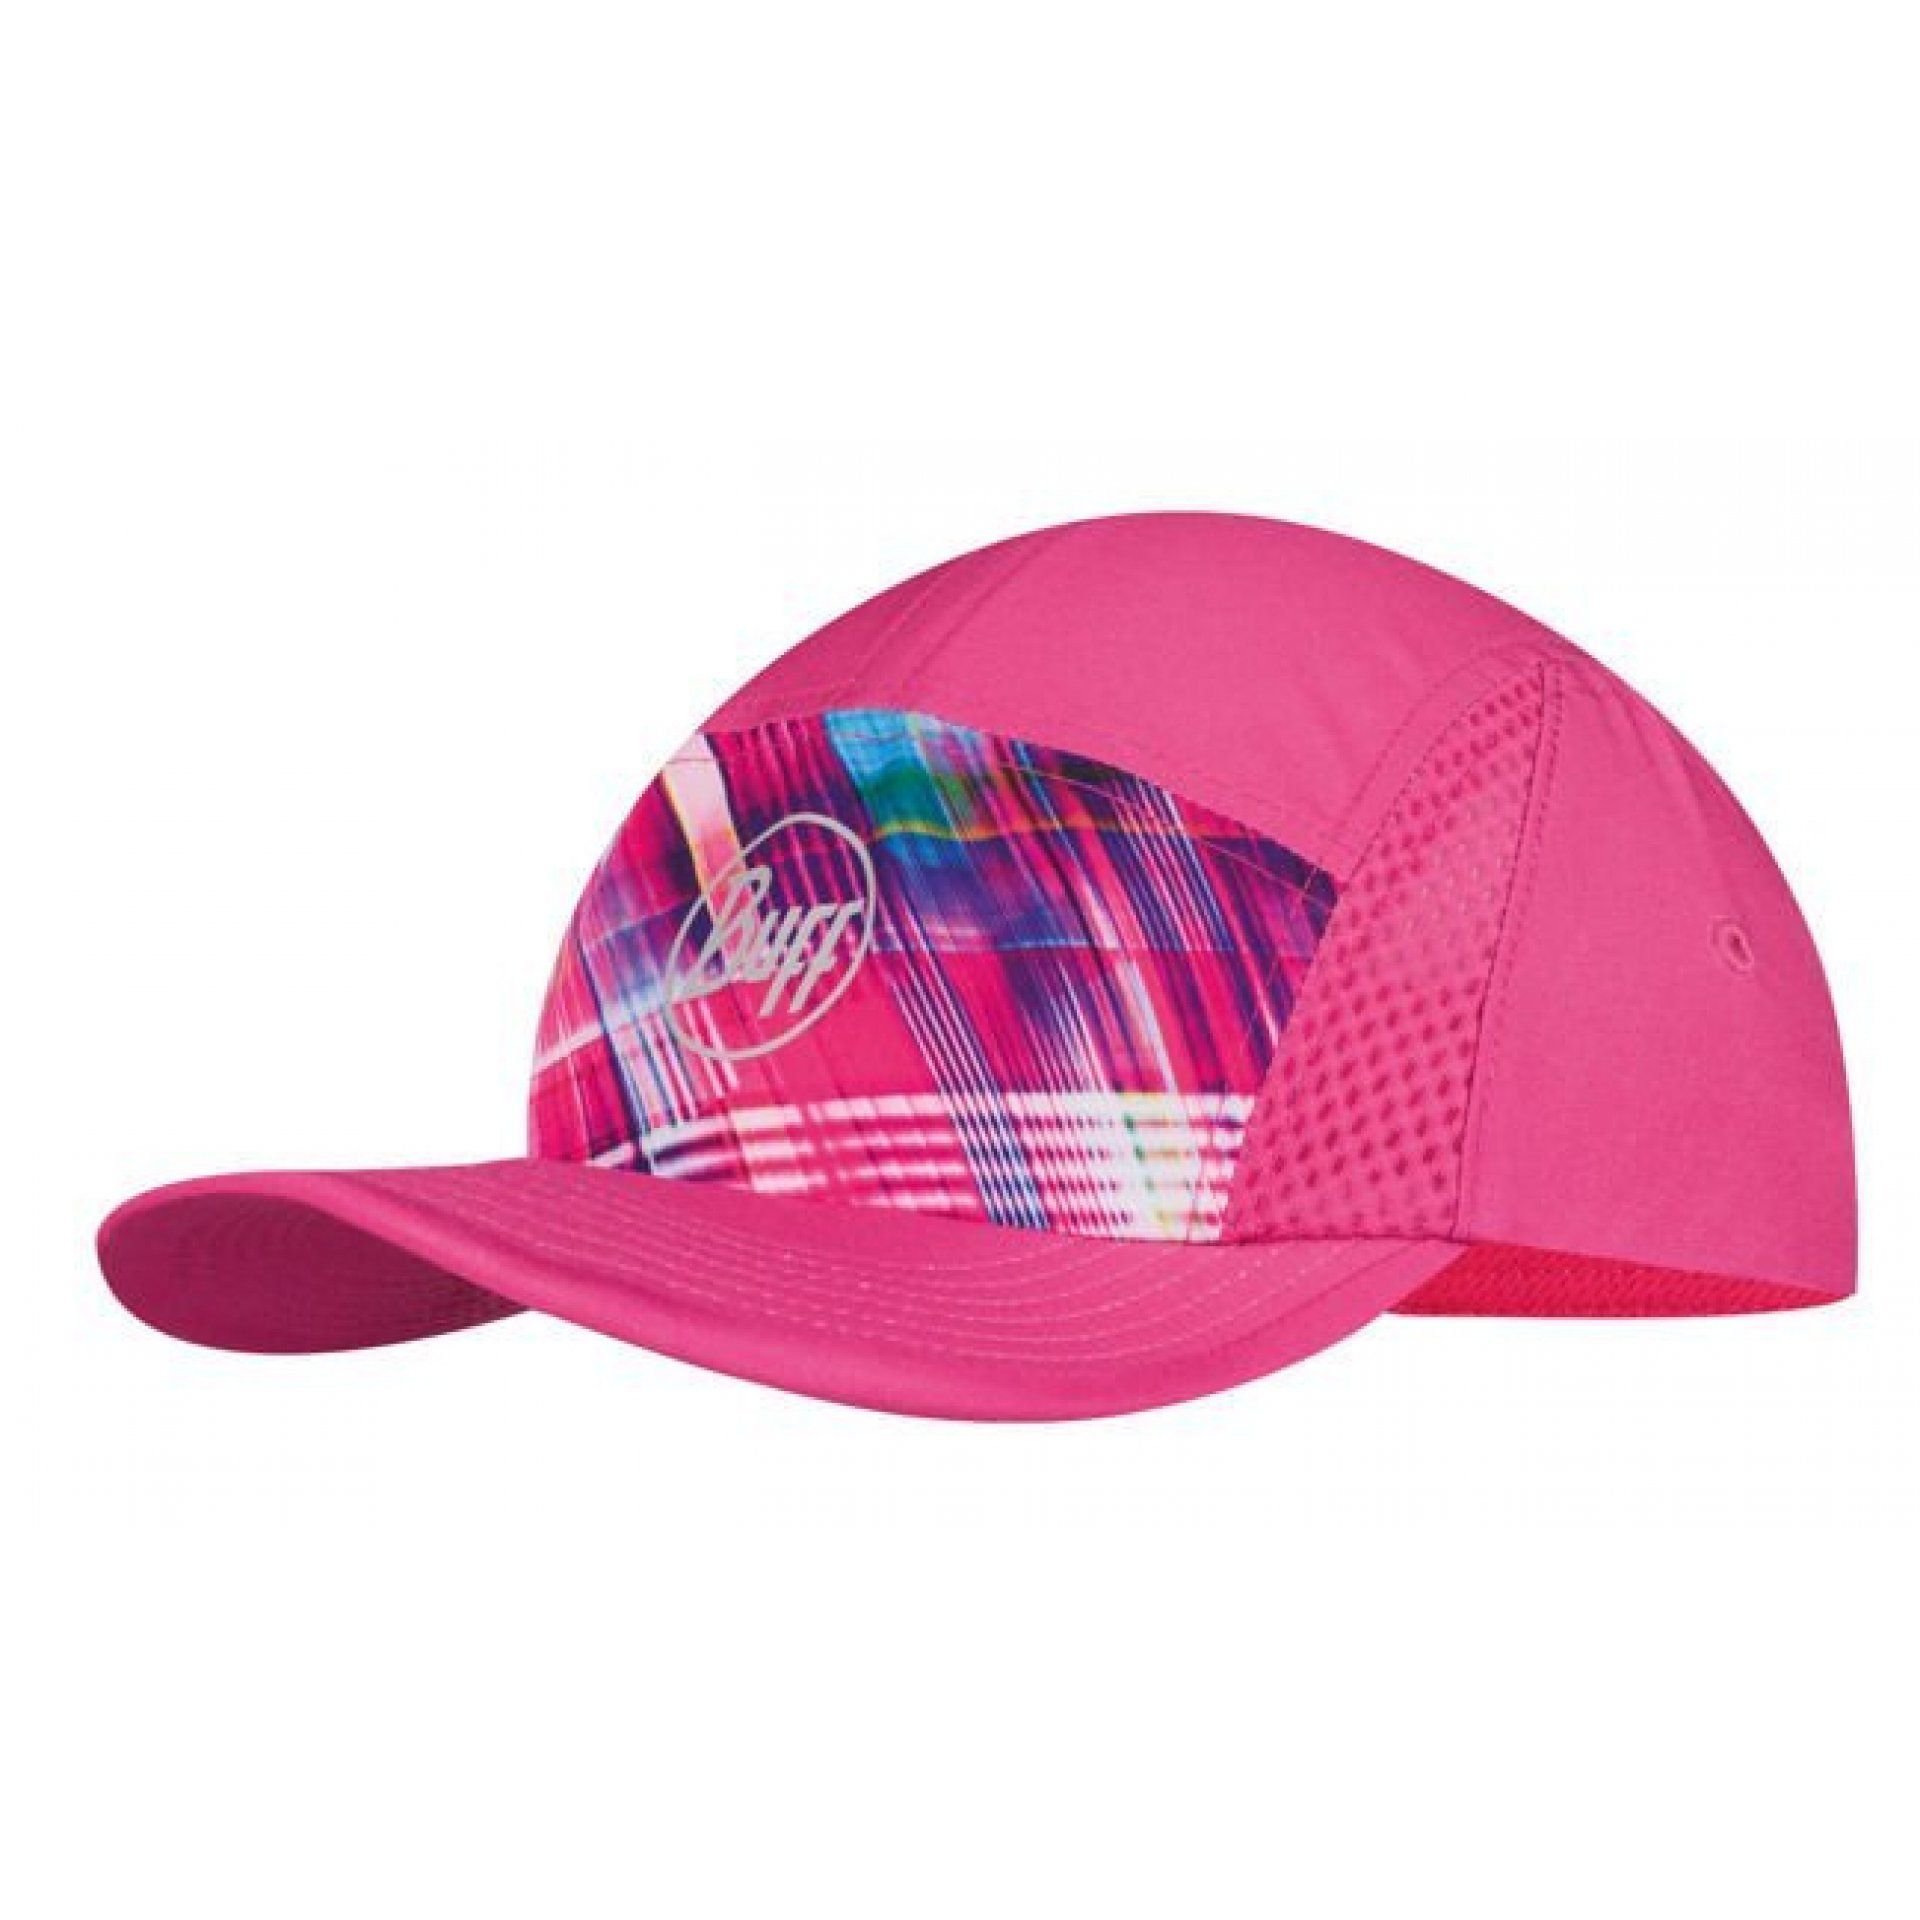 CZAPKA Z DASZKIEM BUFF RUN CAP B-MAGIC PINK